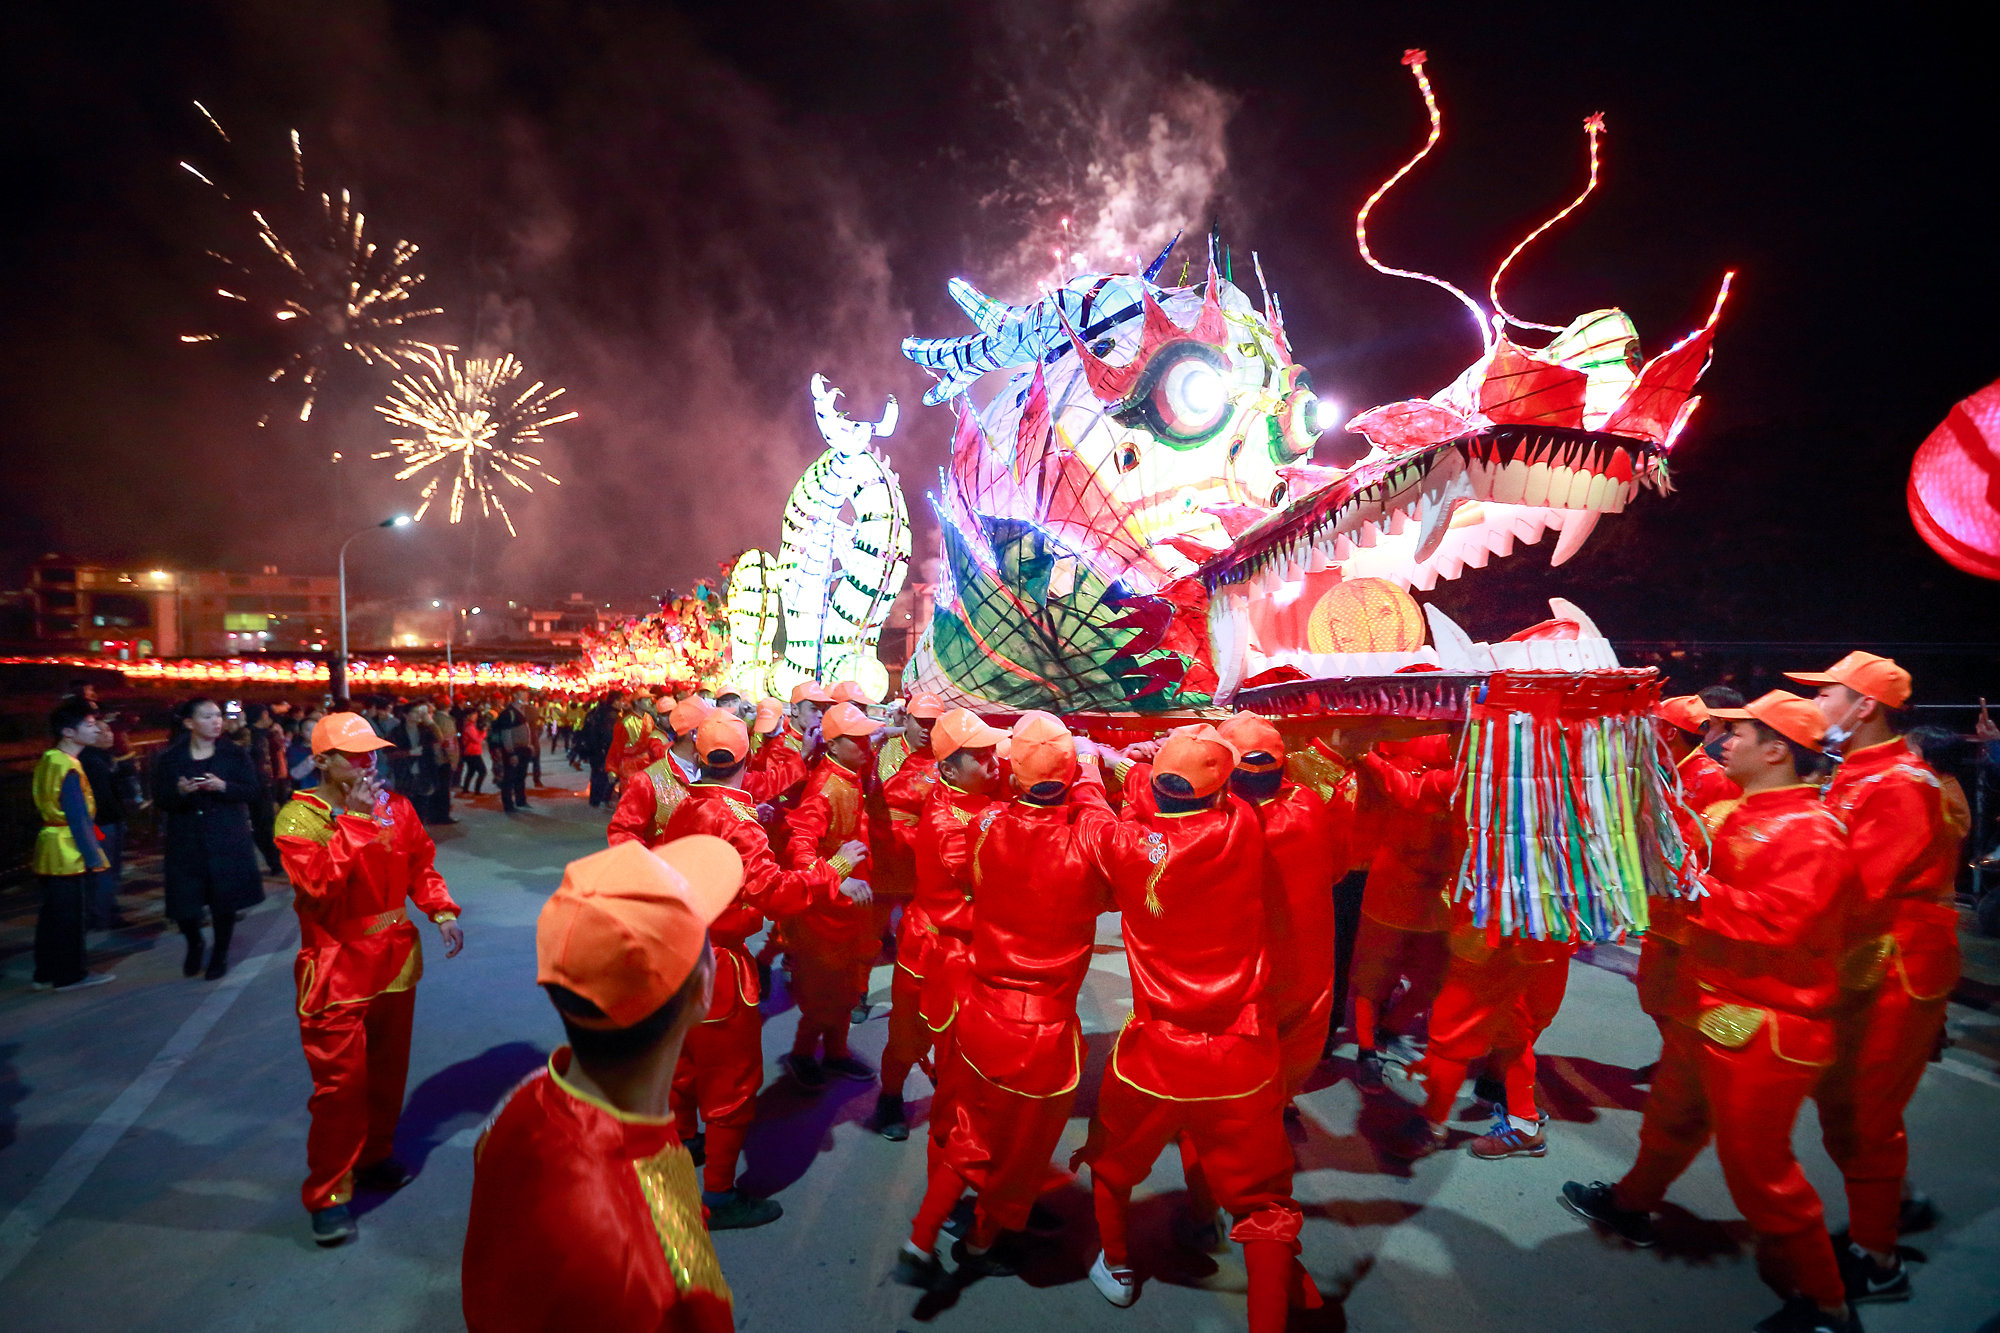 wechat users send 46 billion digital red packets over chinese lunar new year tech wire asia - How Long Is The Chinese New Year